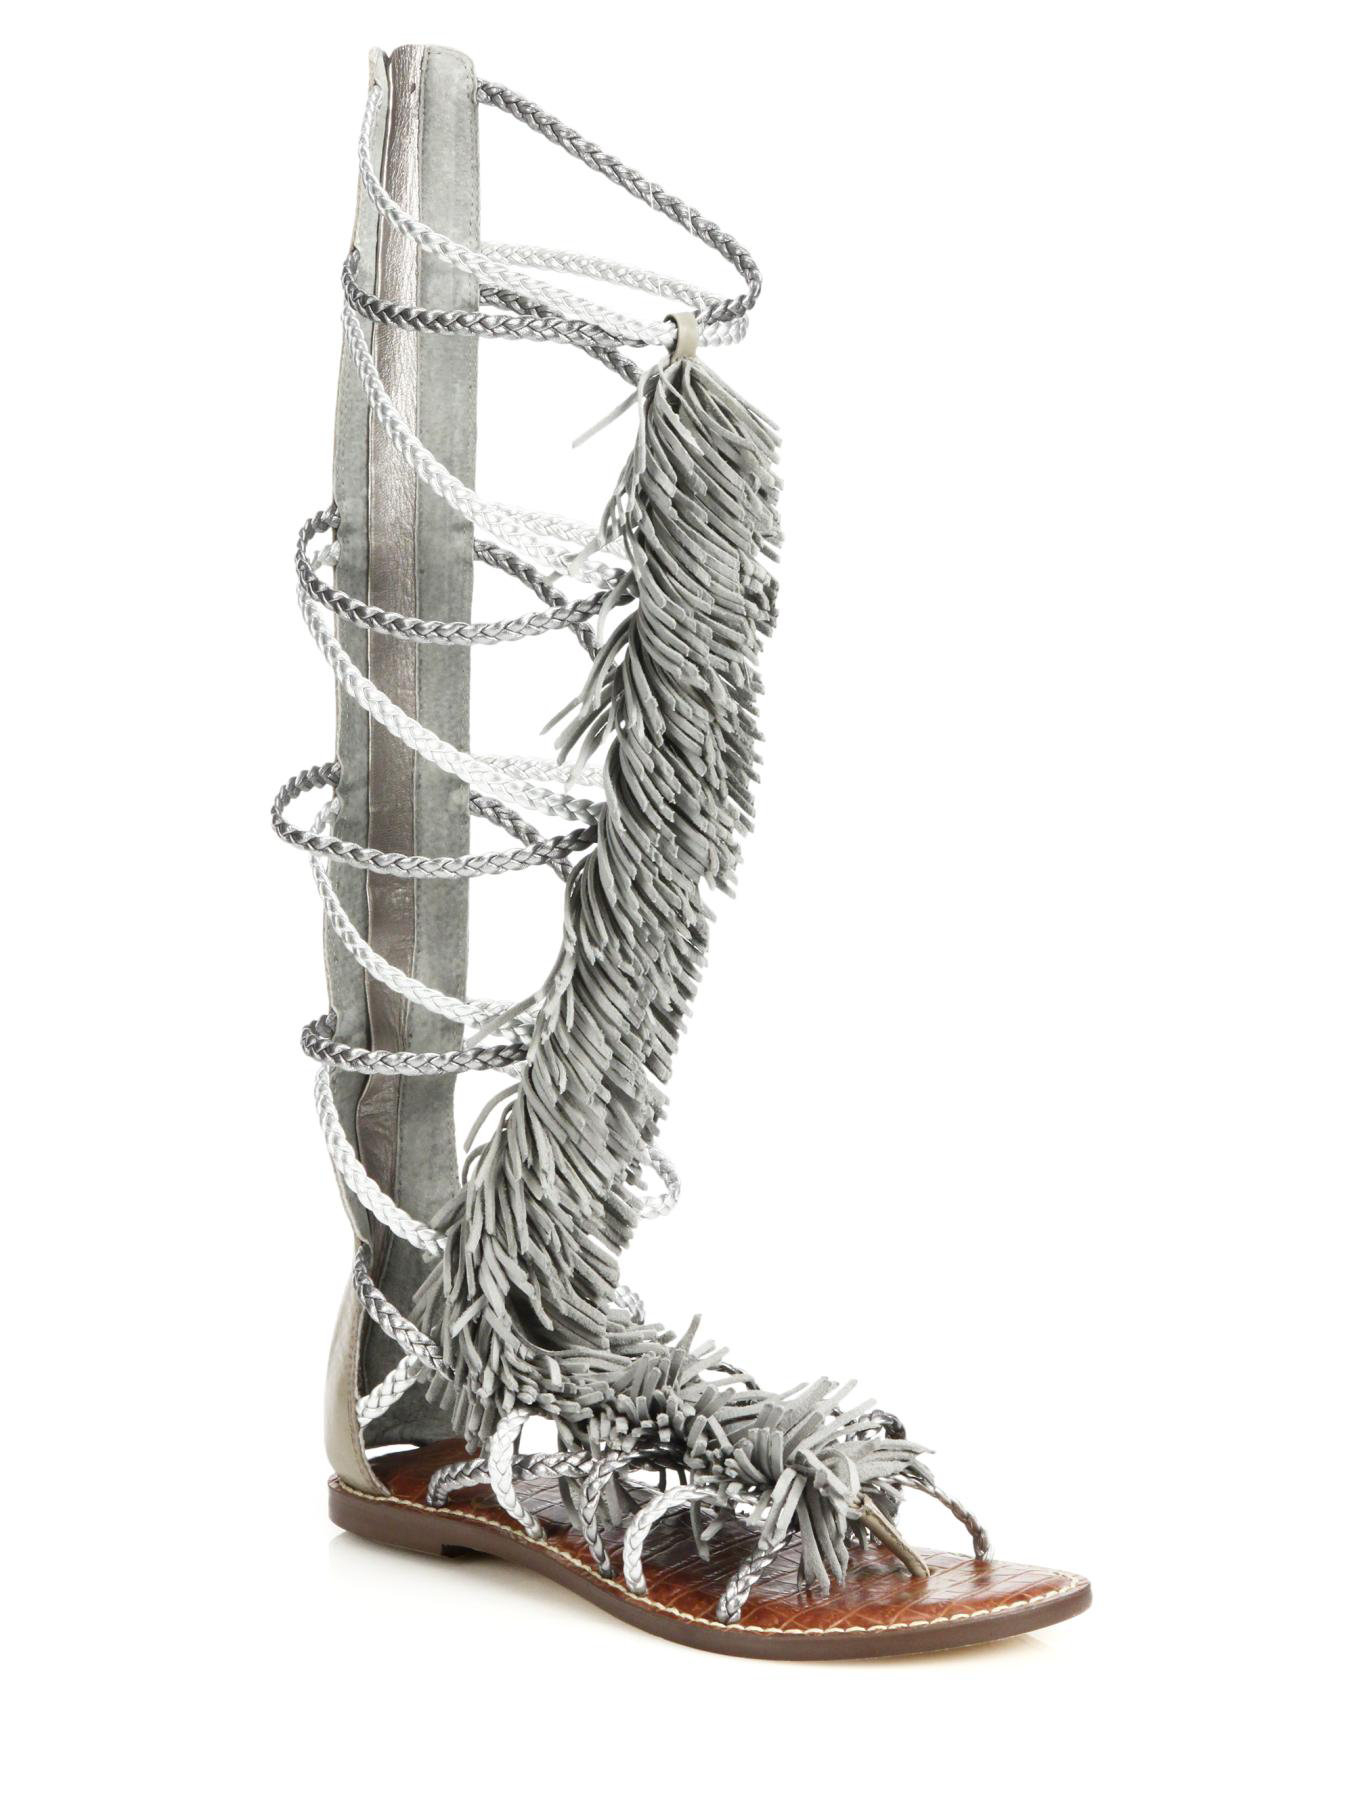 2bc8f635e785a Lyst - Sam Edelman Gia Knee-High Fringed Metallic Leather Sandals in ...